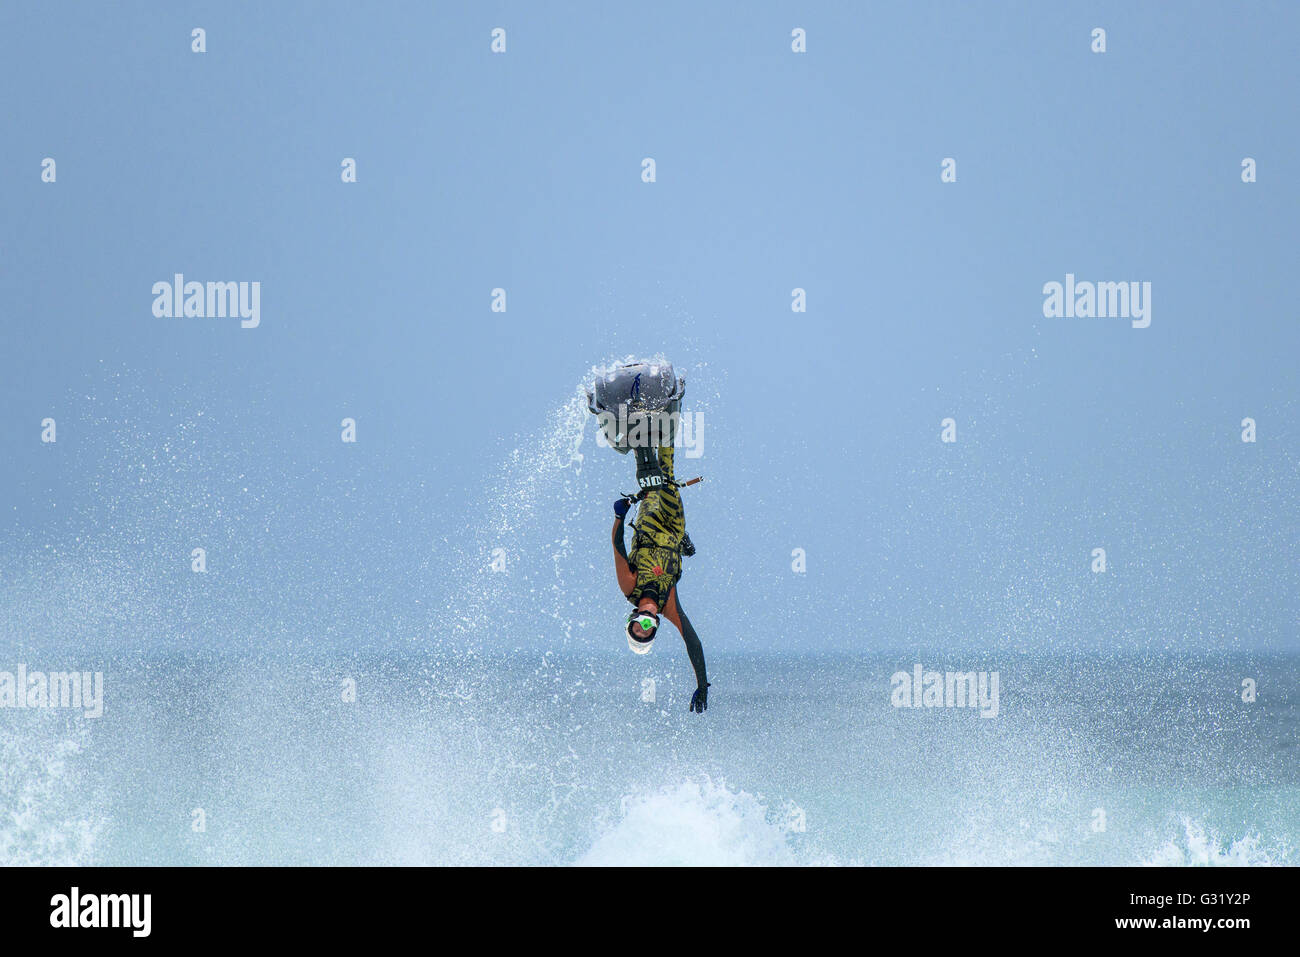 Fistral, Newquay, Cornwall. 6th June, 2016.  Dan Foy performs a spectacular stunt on his Jet-ski at the IFWA World - Stock Image